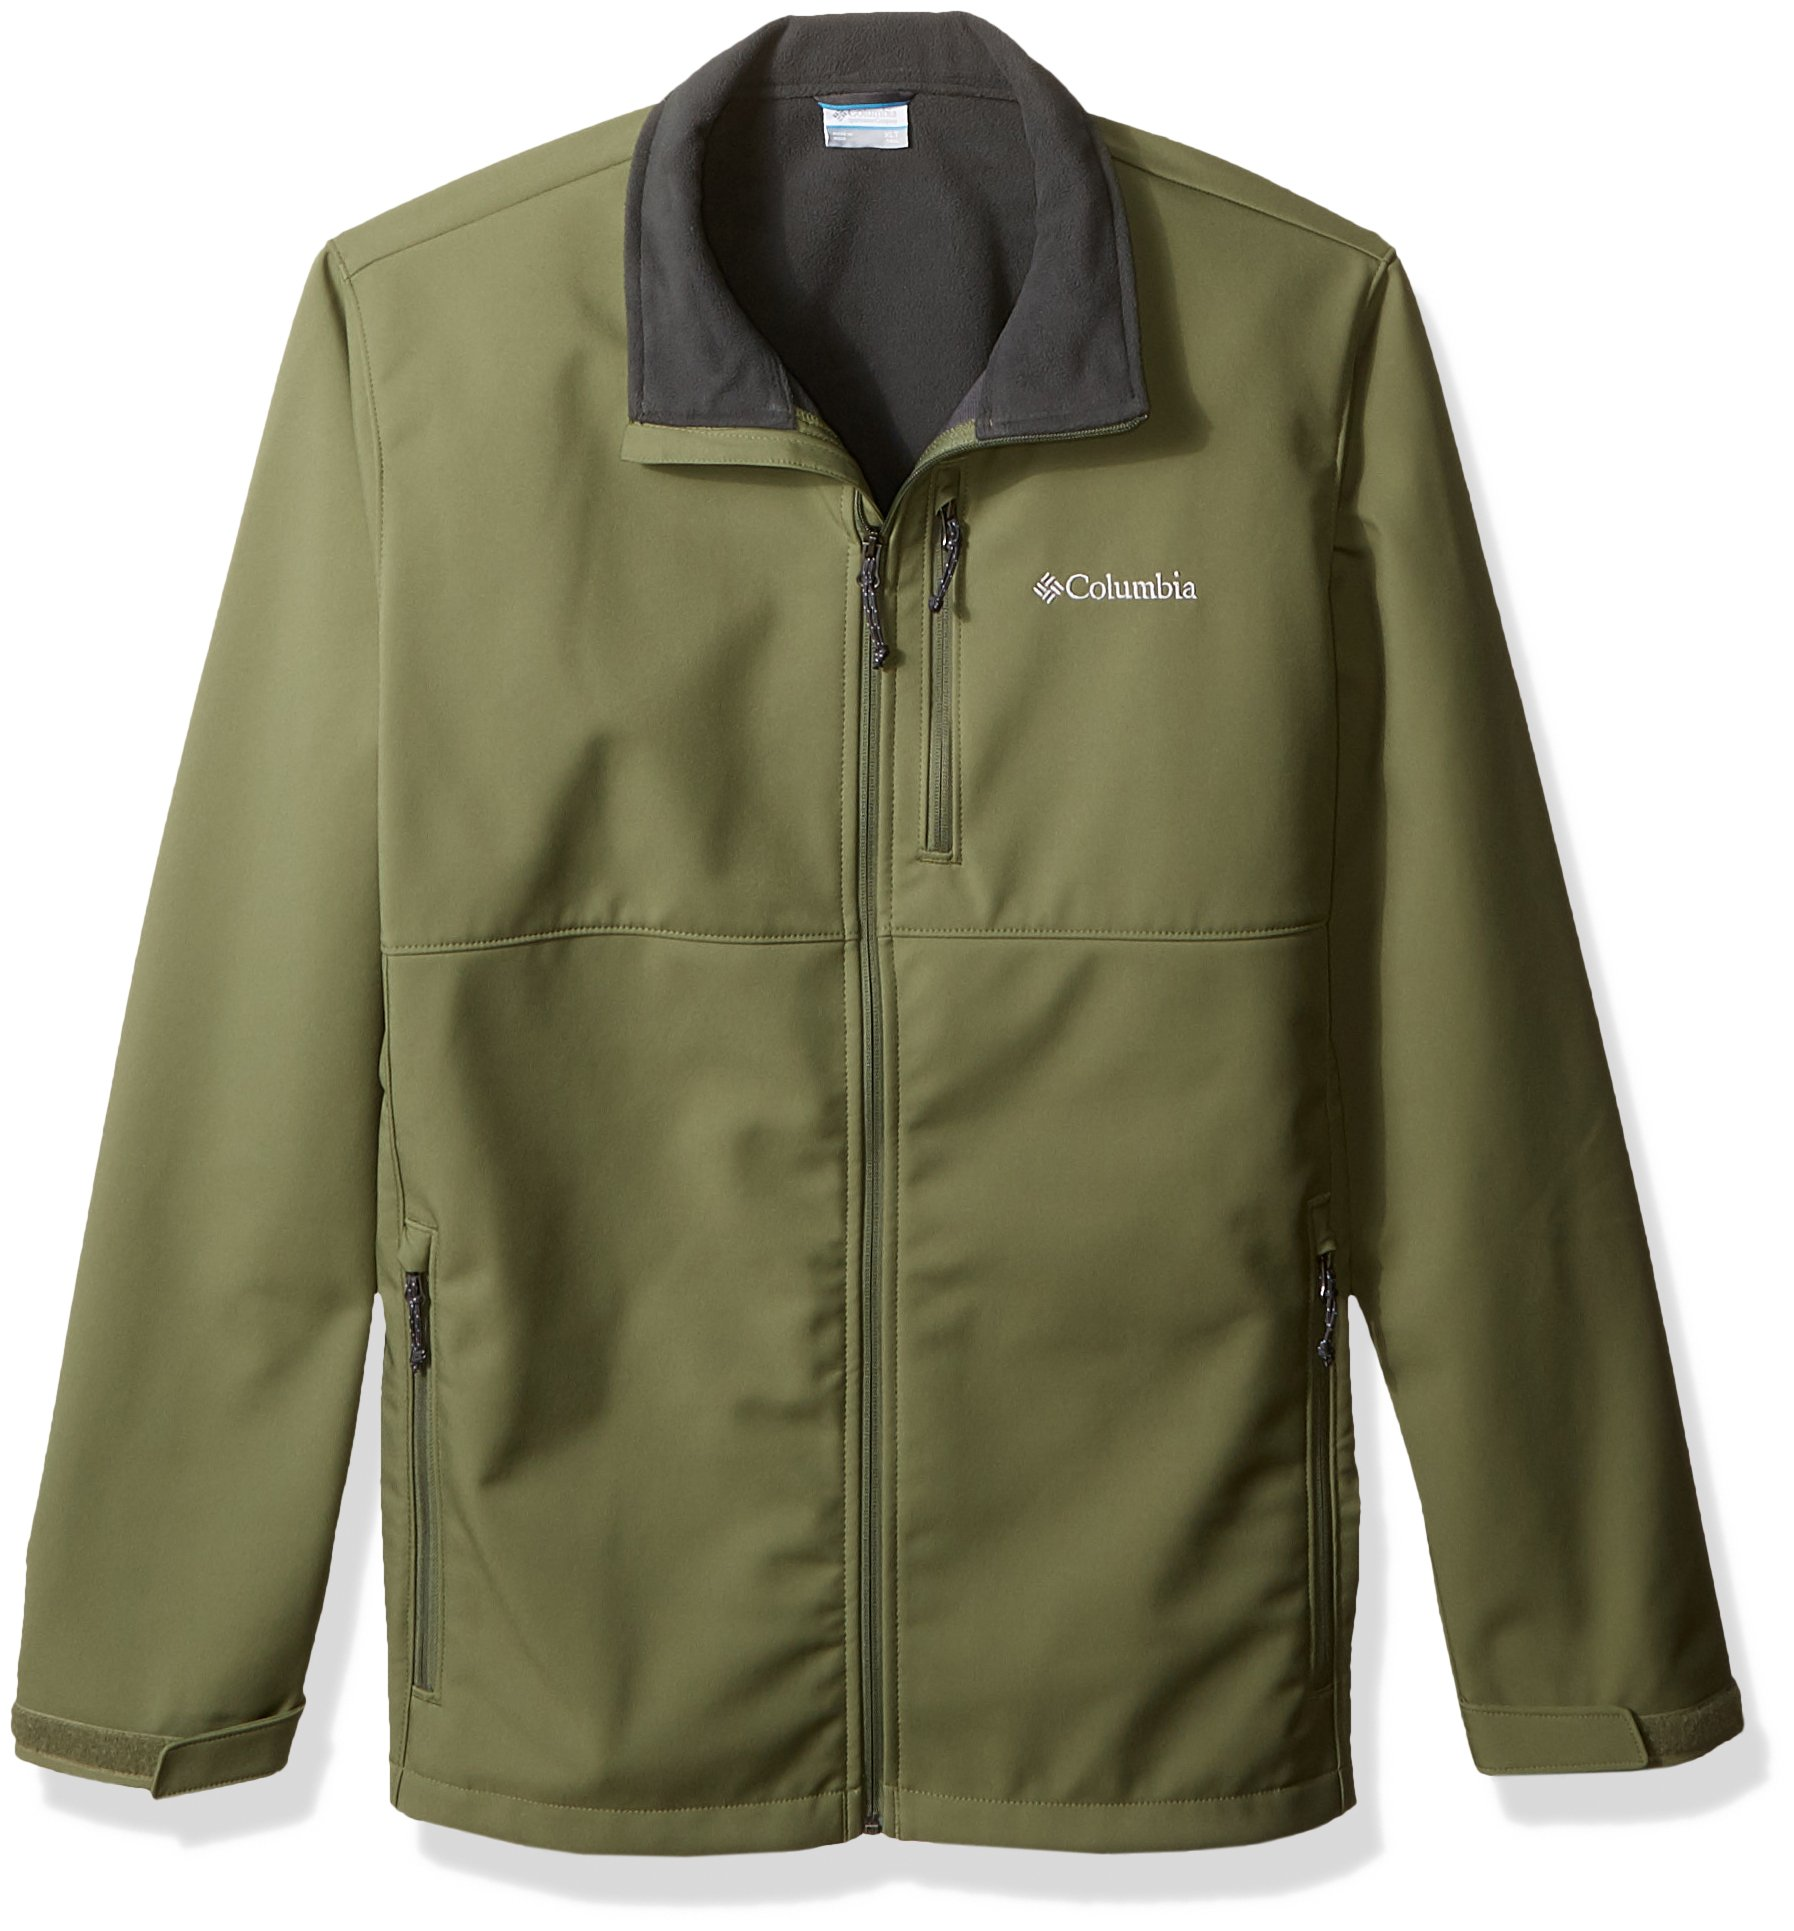 Columbia Men's Ascender Softshell Jacket, Water & Wind Resistant